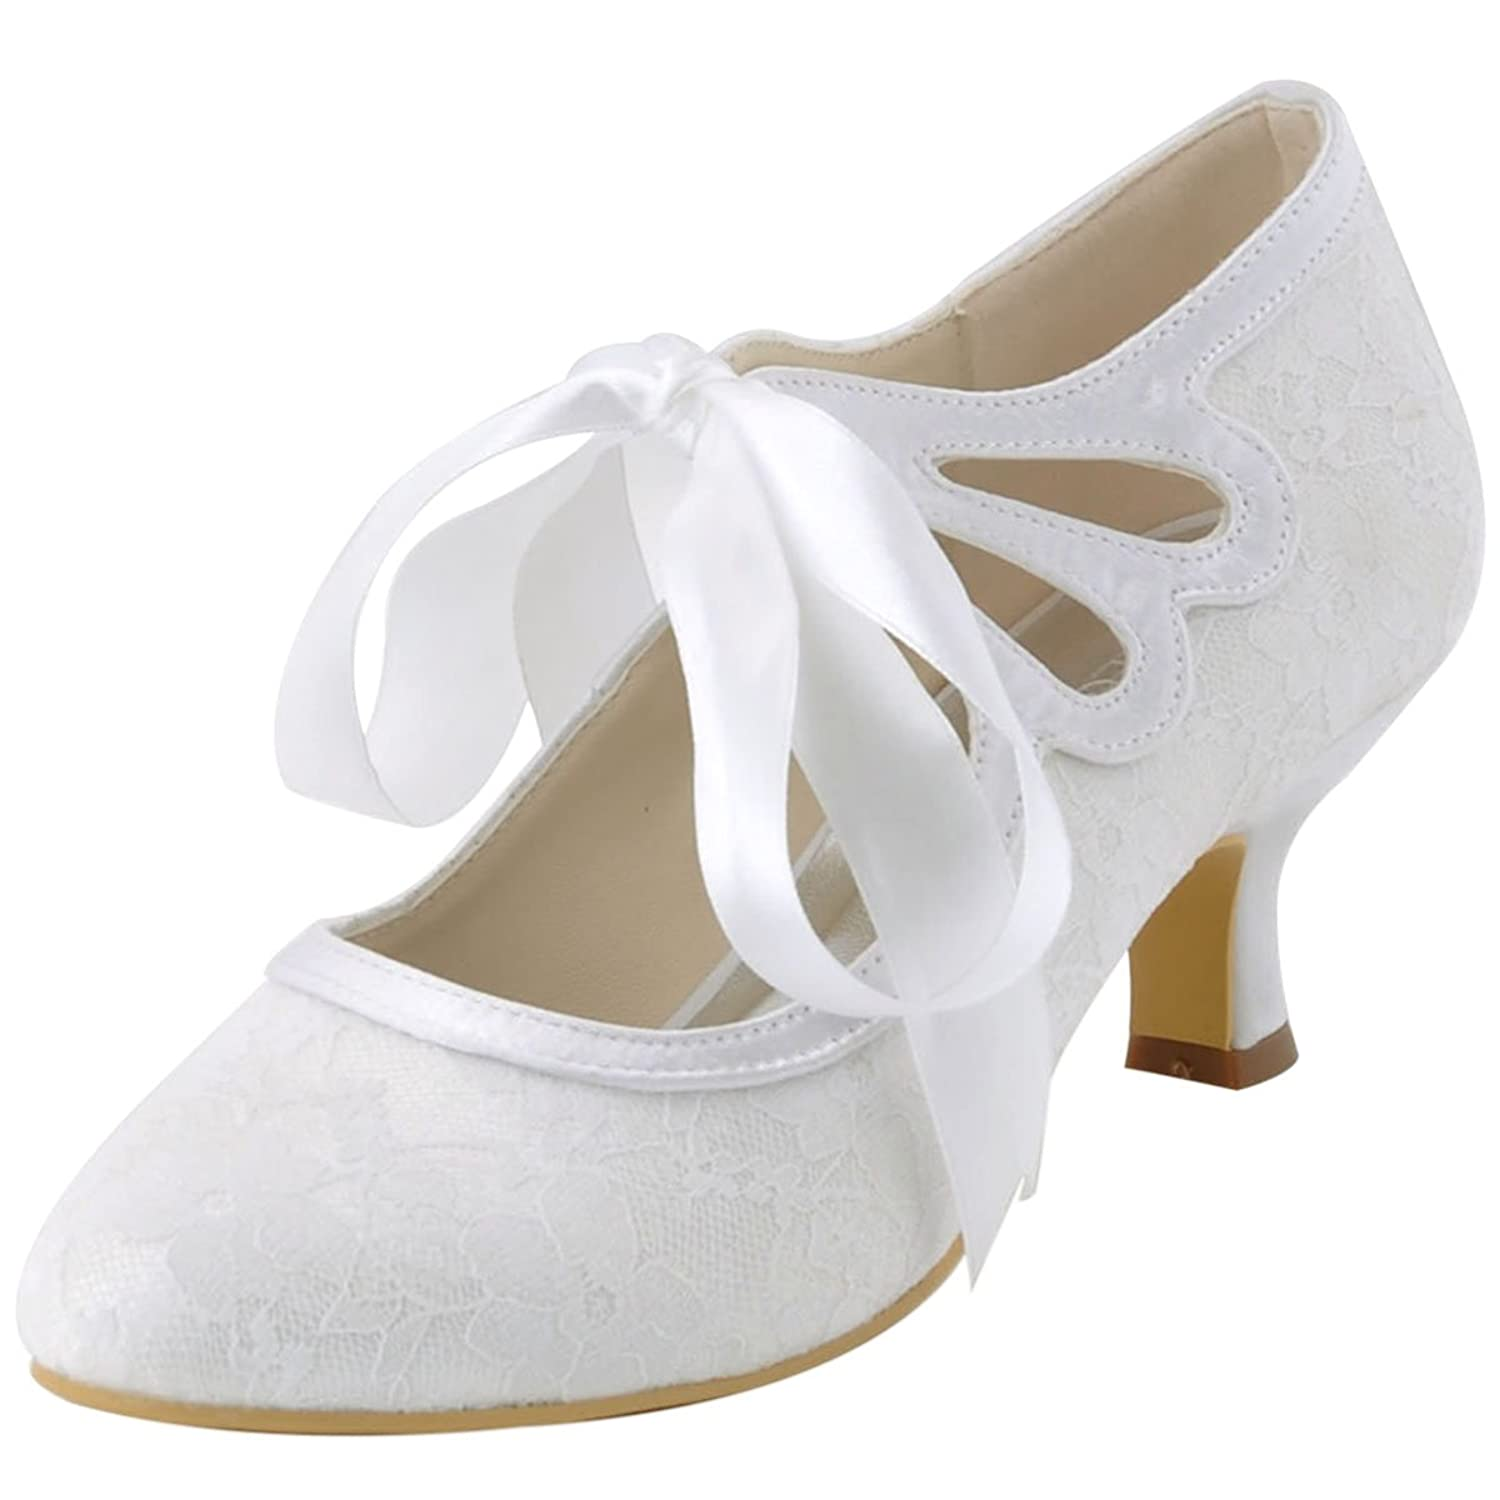 baab813808 1960s Shoes: 8 Popular Shoe Styles ElegantPark HC1521 Womens Mary Jane  Closed Toe Low Heel